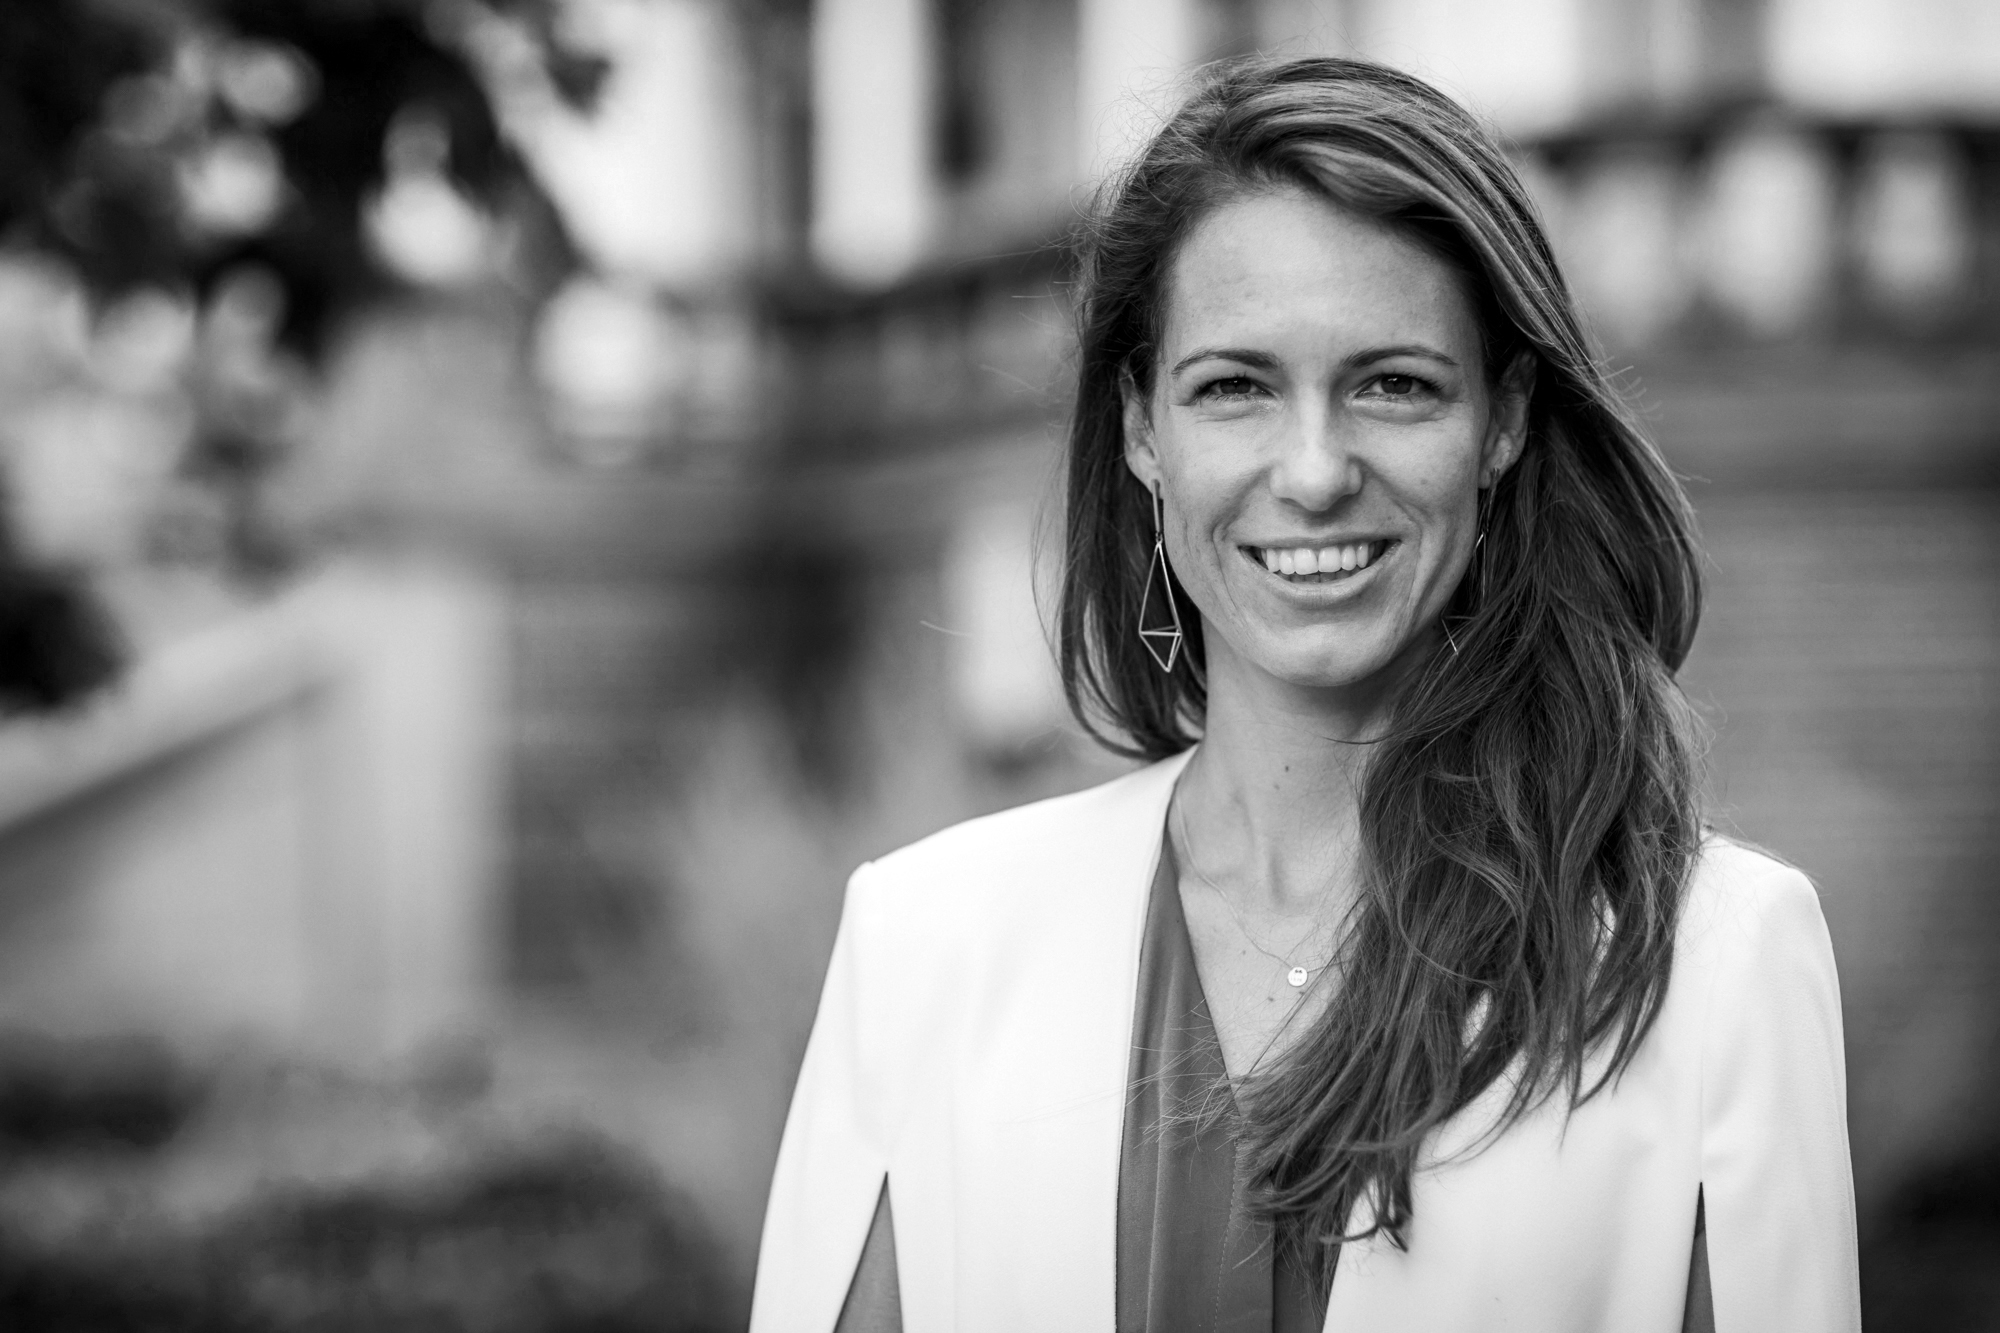 We are honored to welcome Maayke-Aimée Damen as a keynote speaker on our Annual Conference